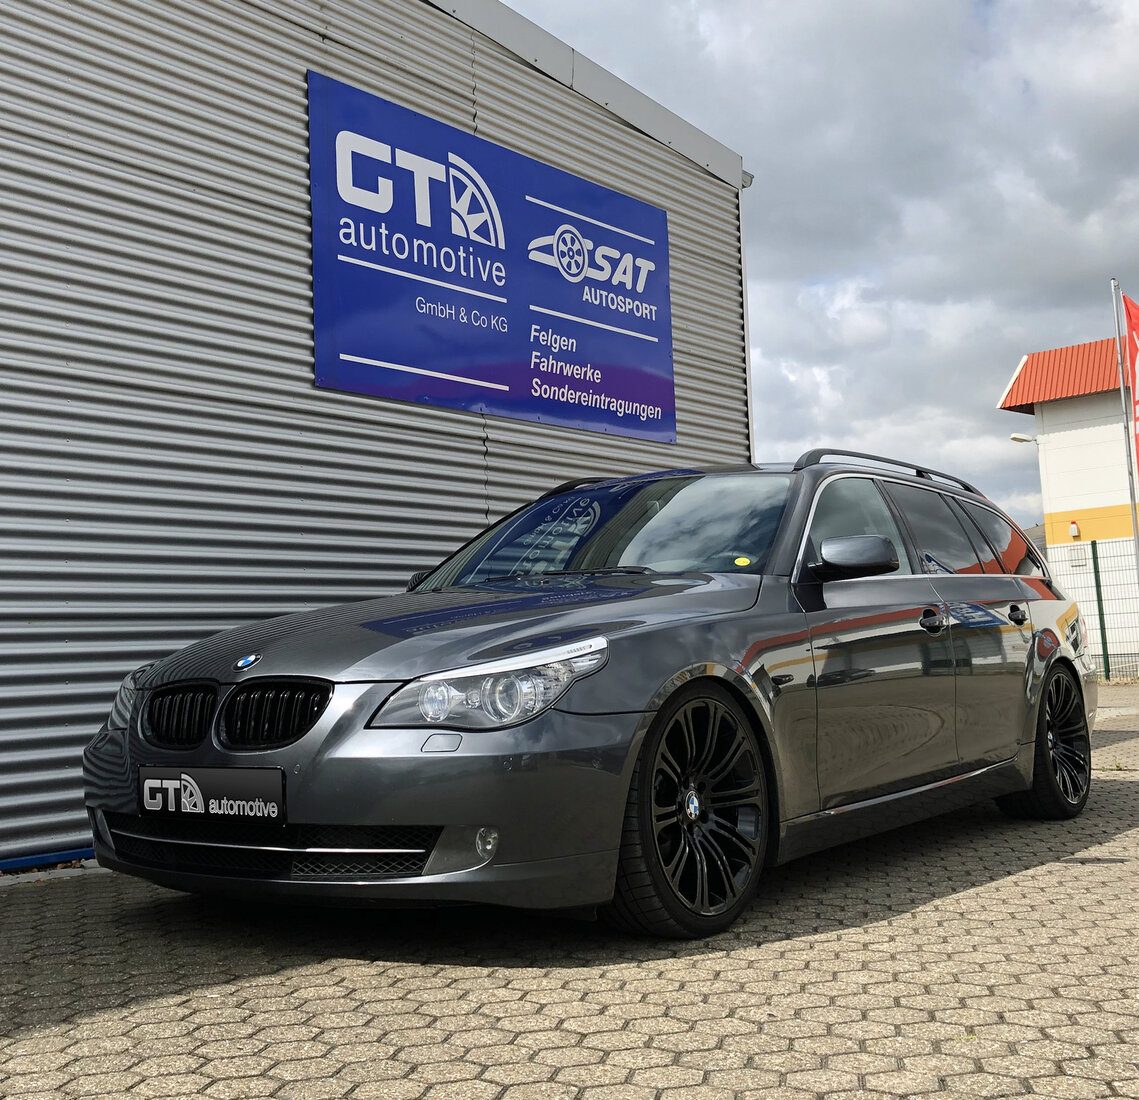 Bmw 5er Touring Typ E61 Galerie By Gt Automotive Gmbh Co Kg